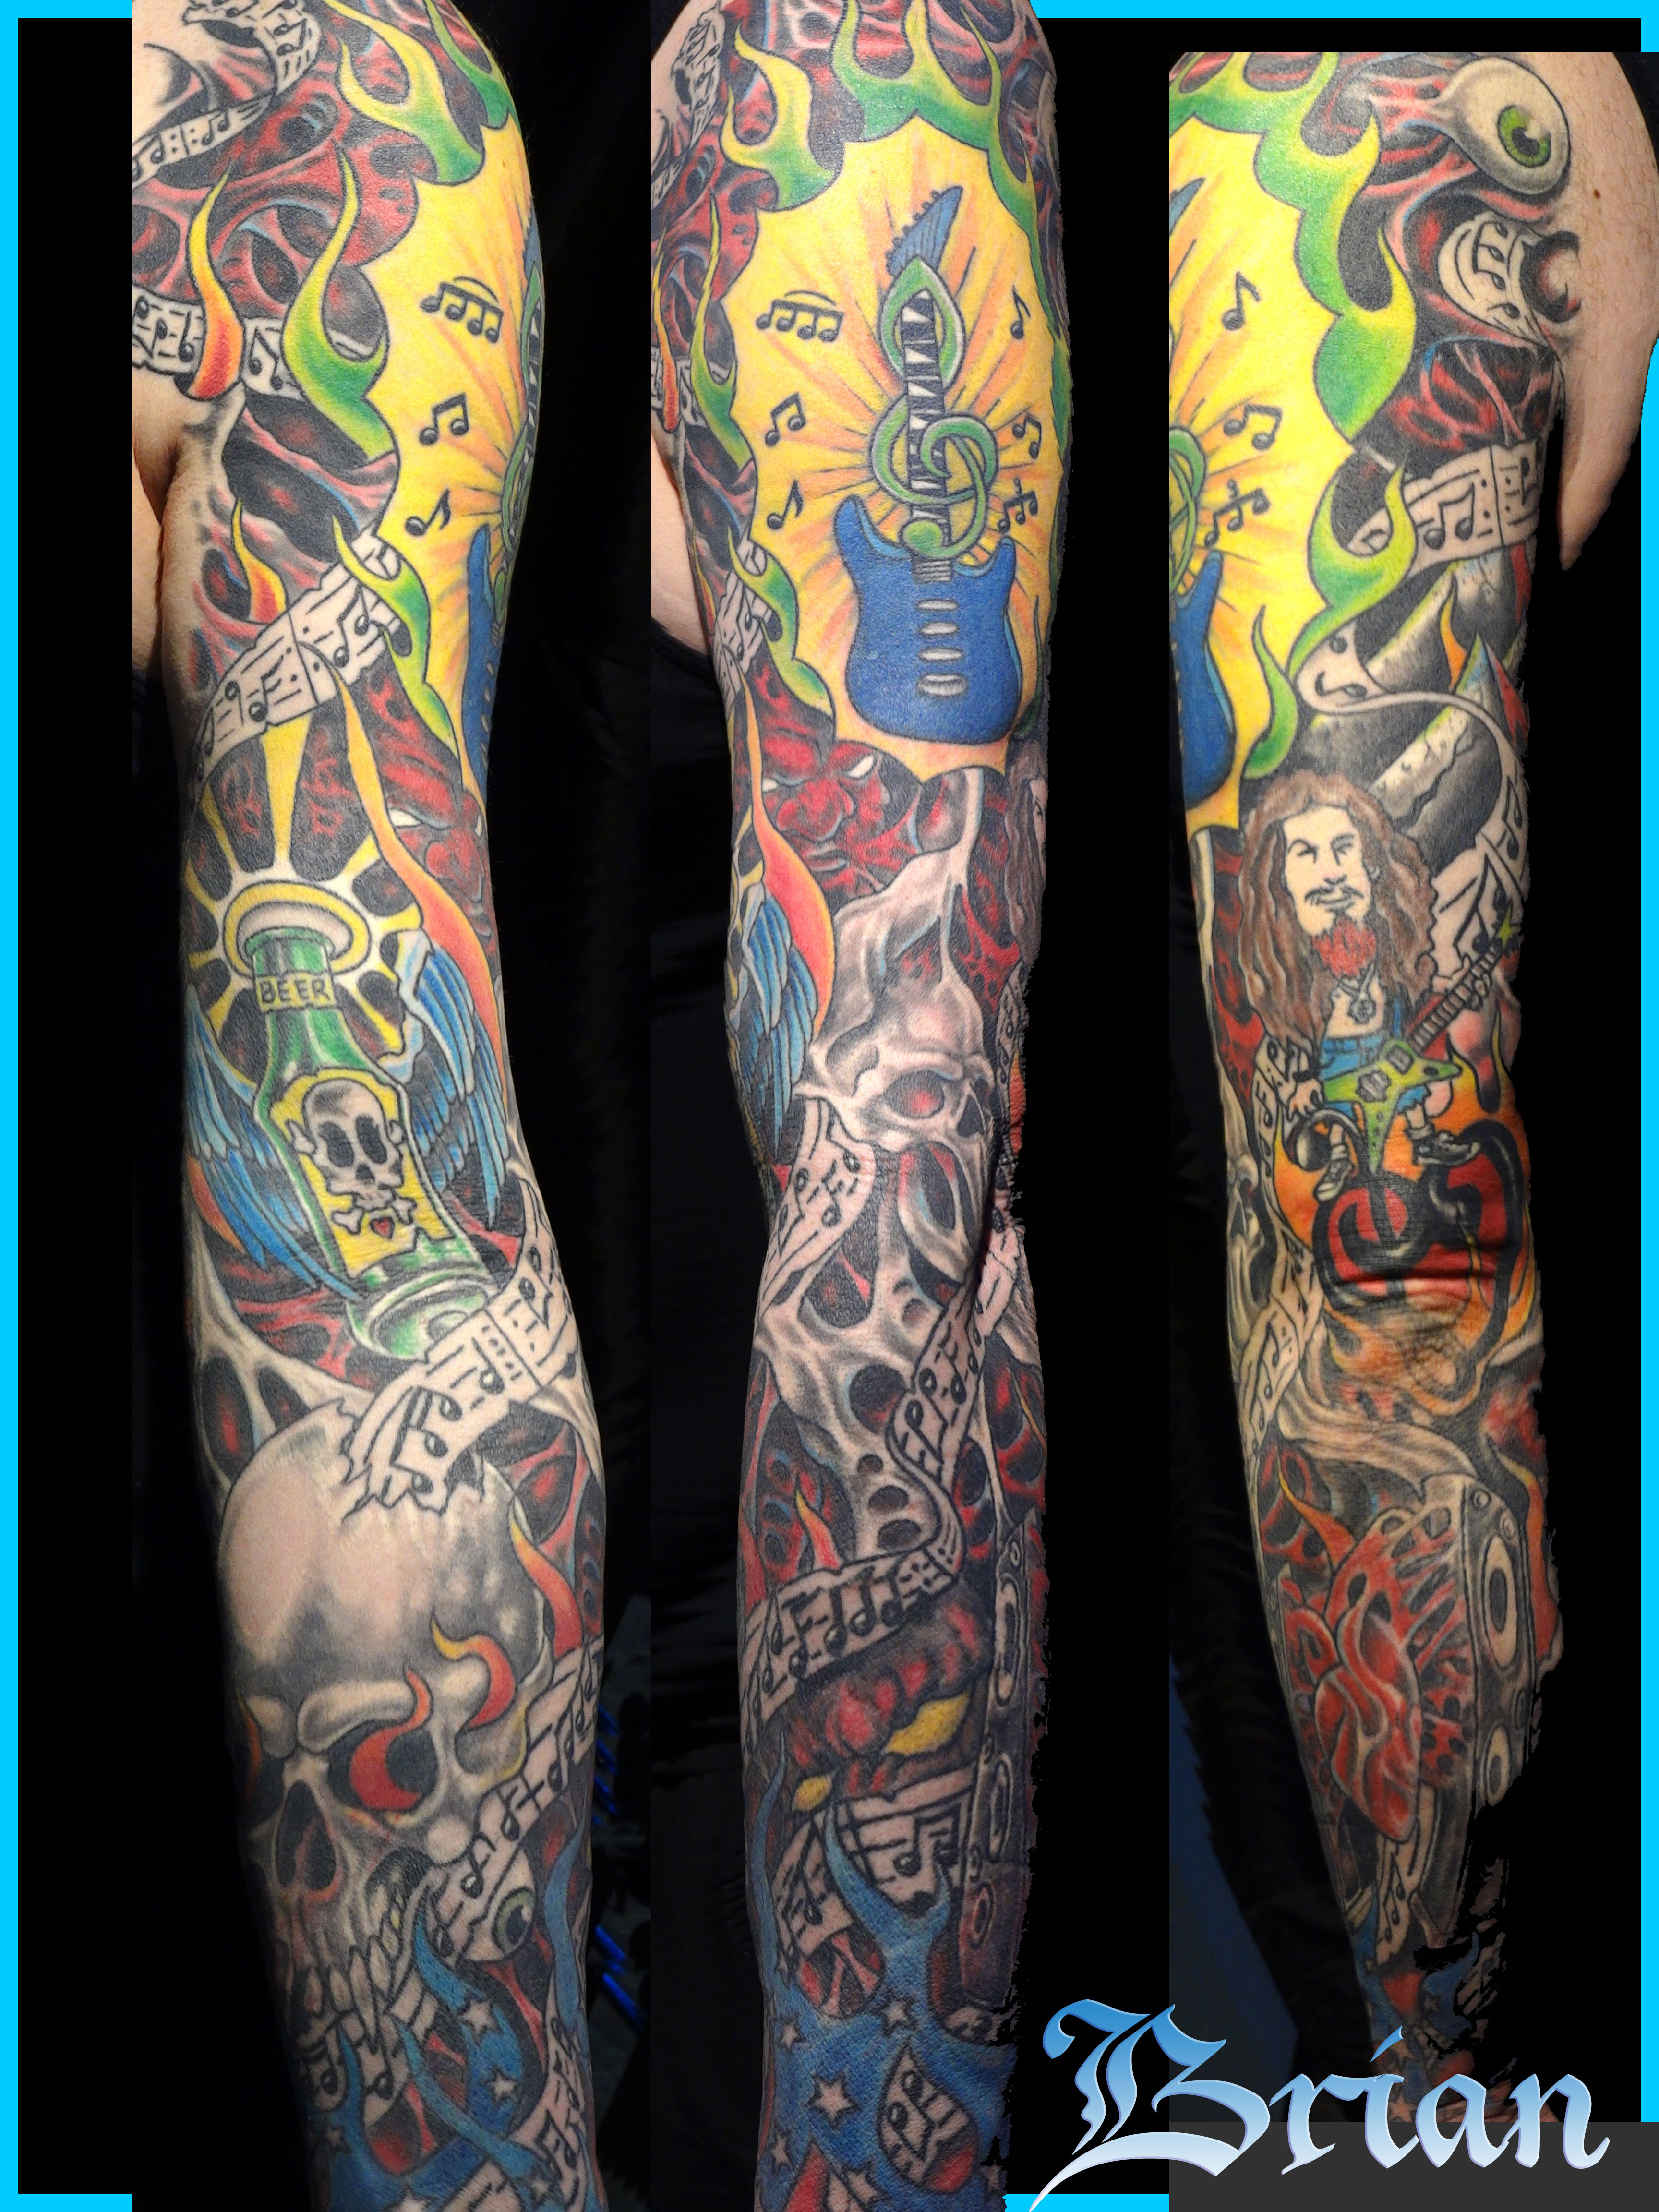 A Brightly Colored Sleeve Adorned With Grey Skulls Tattoocom